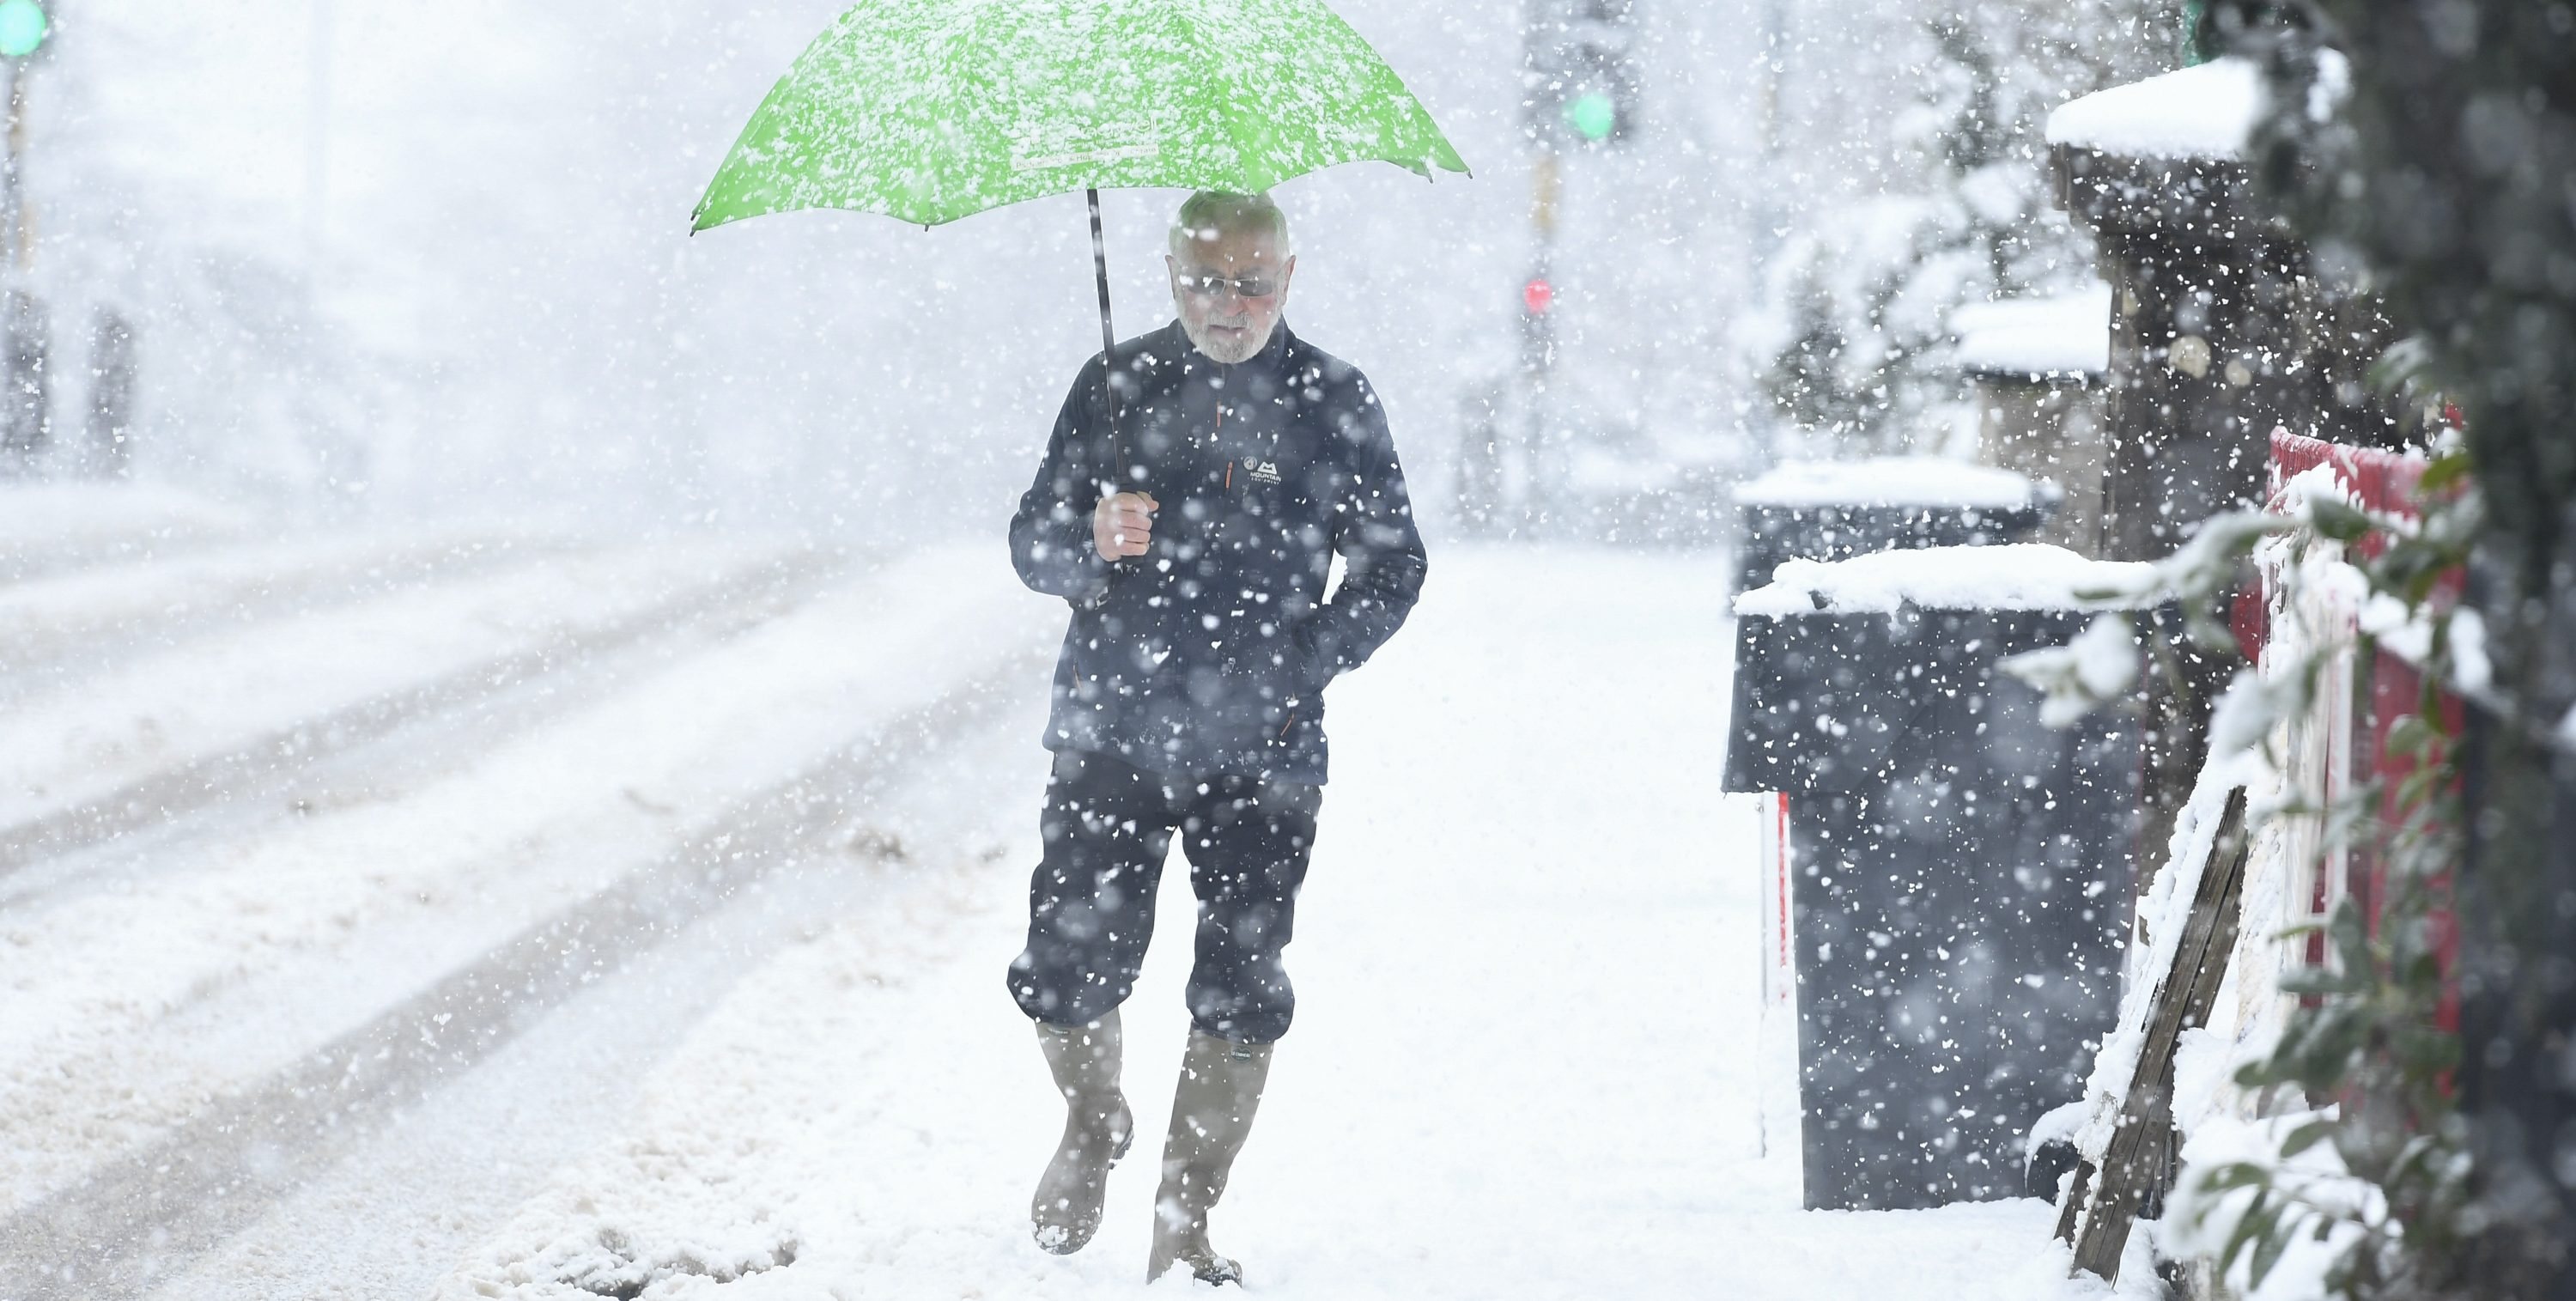 The Met Office issues severe weather warnings as snow hits parts of the UK